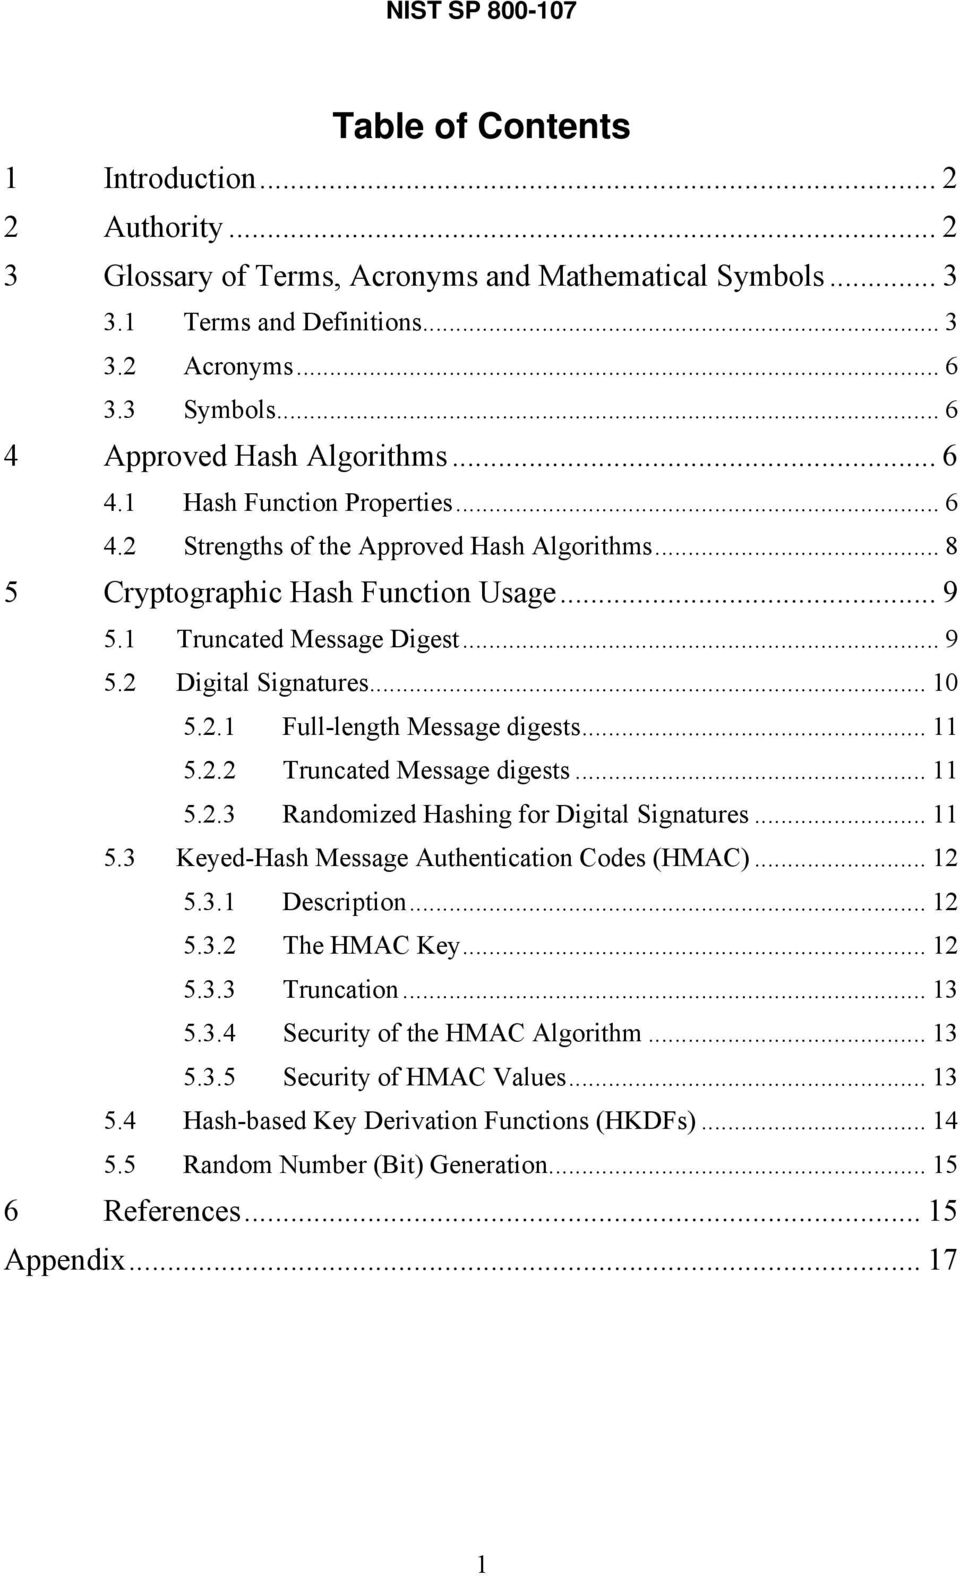 .. 10 5.2.1 Full-length Message digests... 11 5.2.2 Truncated Message digests... 11 5.2.3 Randomized Hashing for Digital Signatures... 11 5.3 Keyed-Hash Message Authentication Codes (HMAC)... 12 5.3.1 Description.